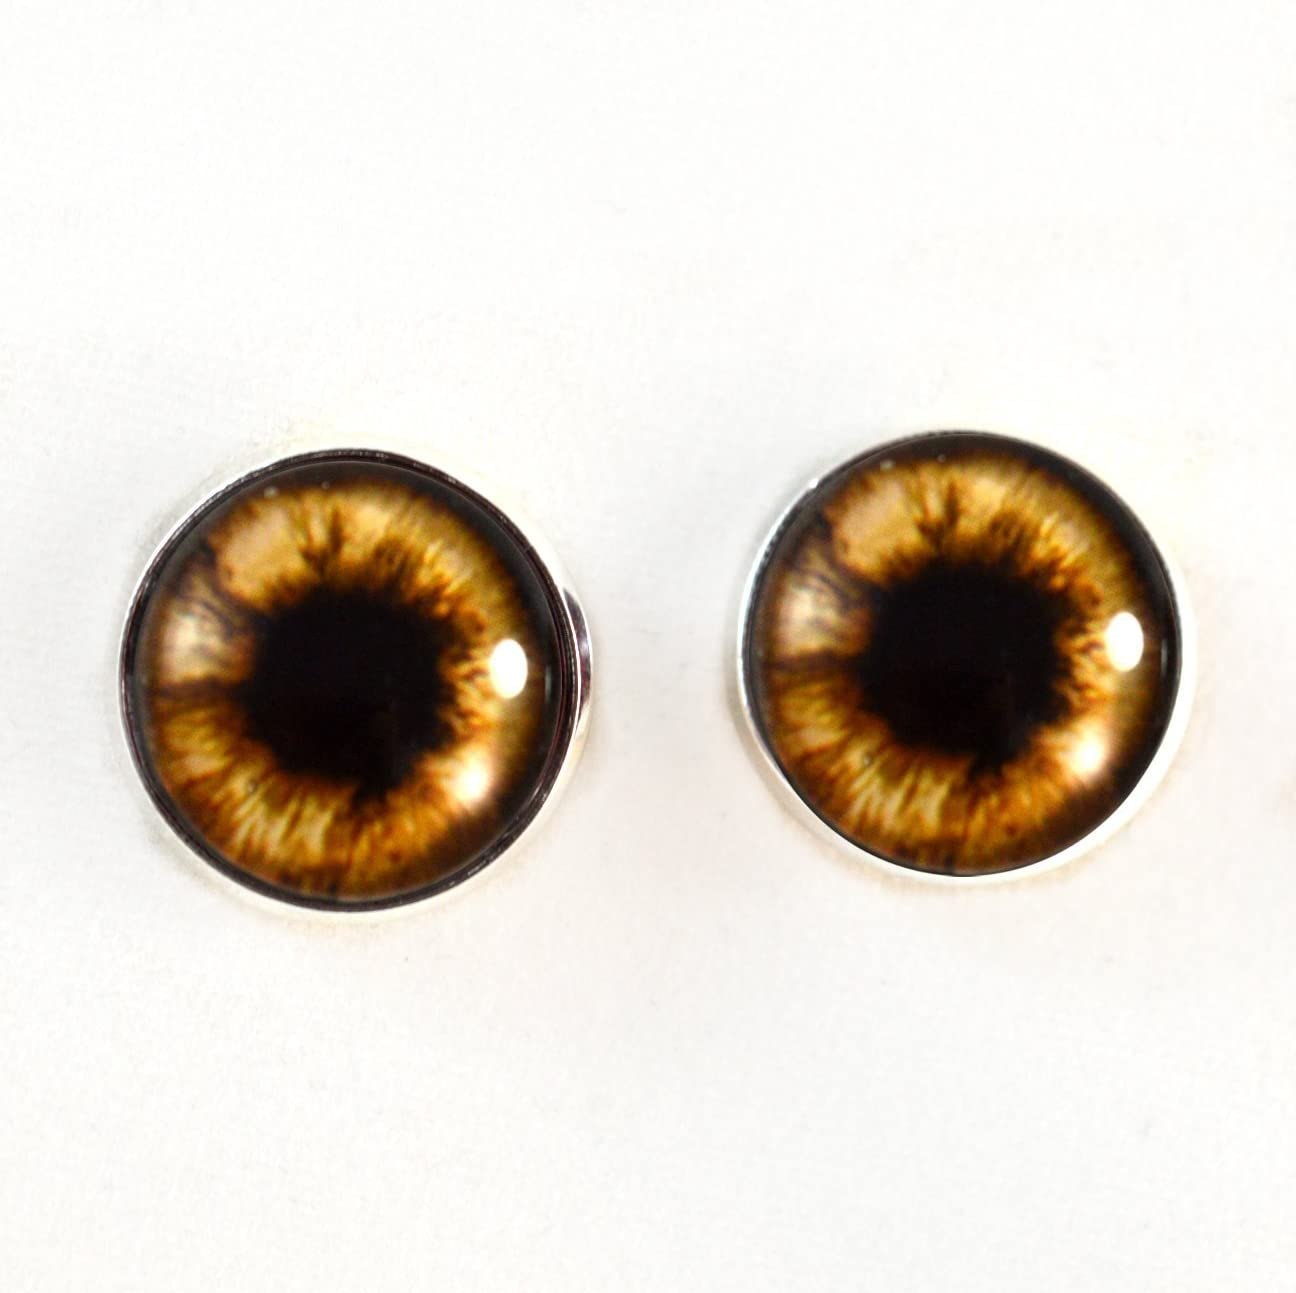 Teddy Bear Plushie Eyes 16mm Brown Glass Eyes Cabochons for Fantasy Art Doll Stuffed Animal Soft Sculptures or Jewelry Making Crafts Set of 2